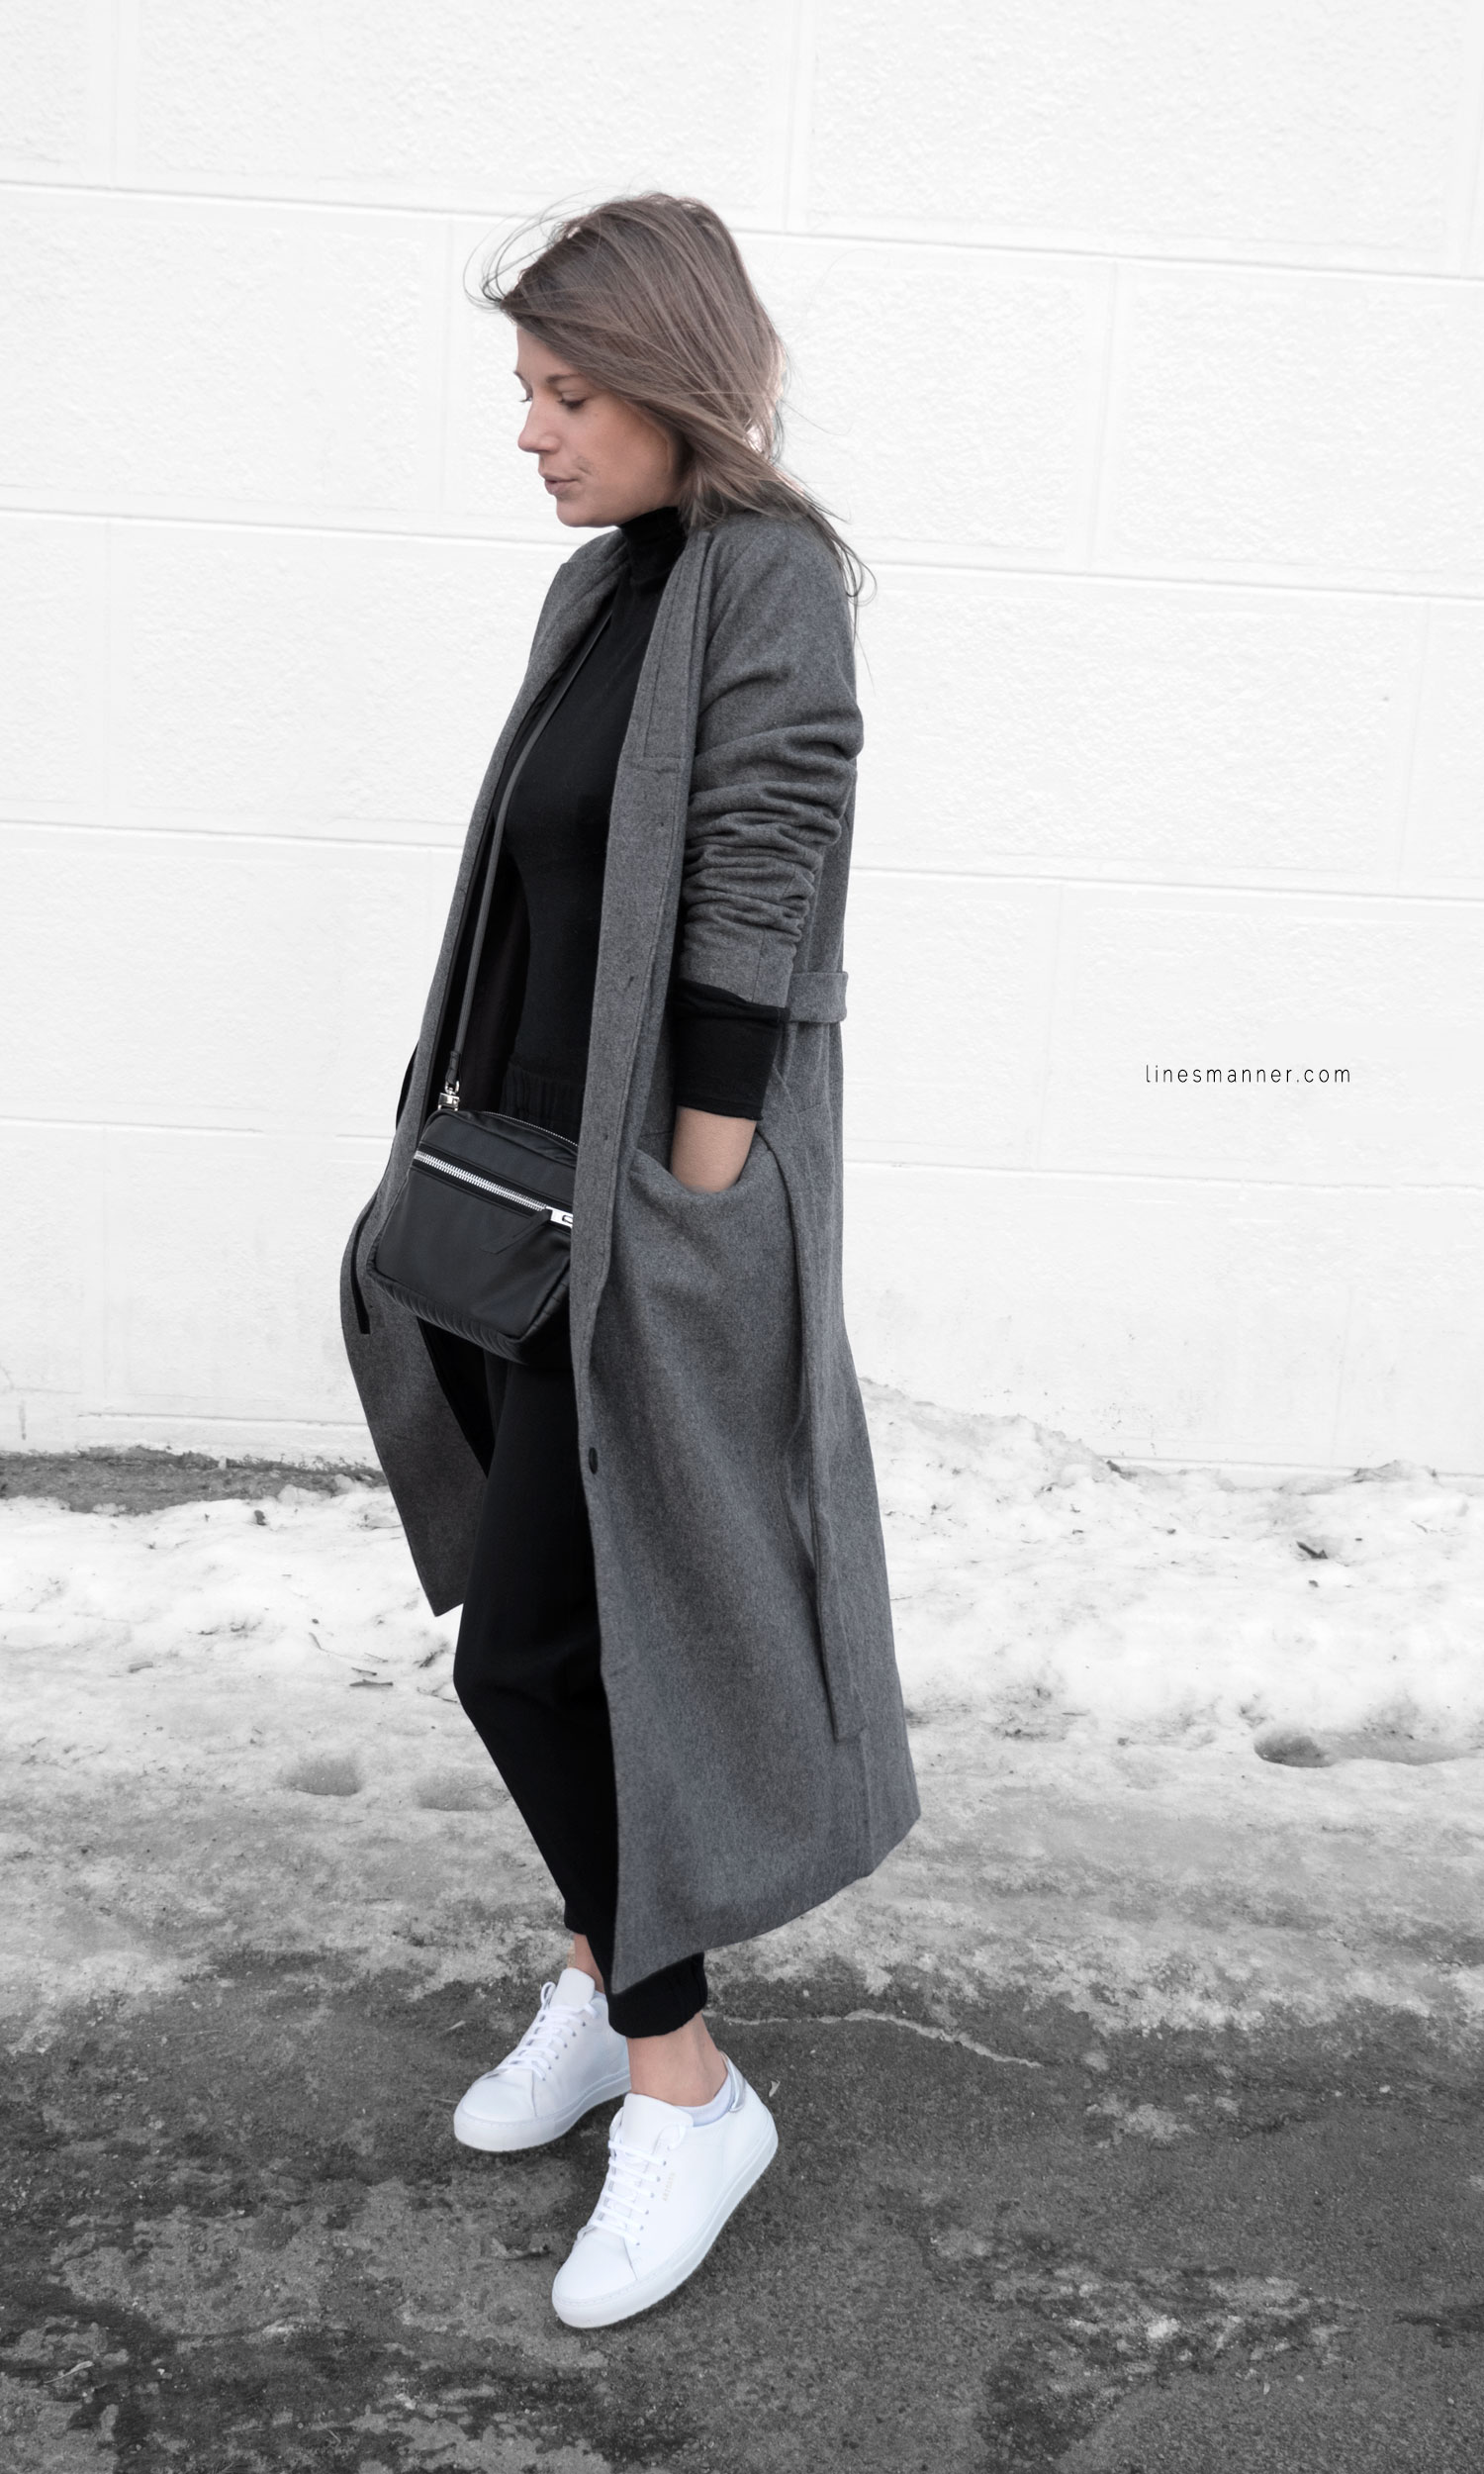 Lines-Manner-Simplicity-Neutral-Palette-Functional-Versatile-Timeless-Grey-Winter_Coat-Details-Essentials-Minimal-Basics-3